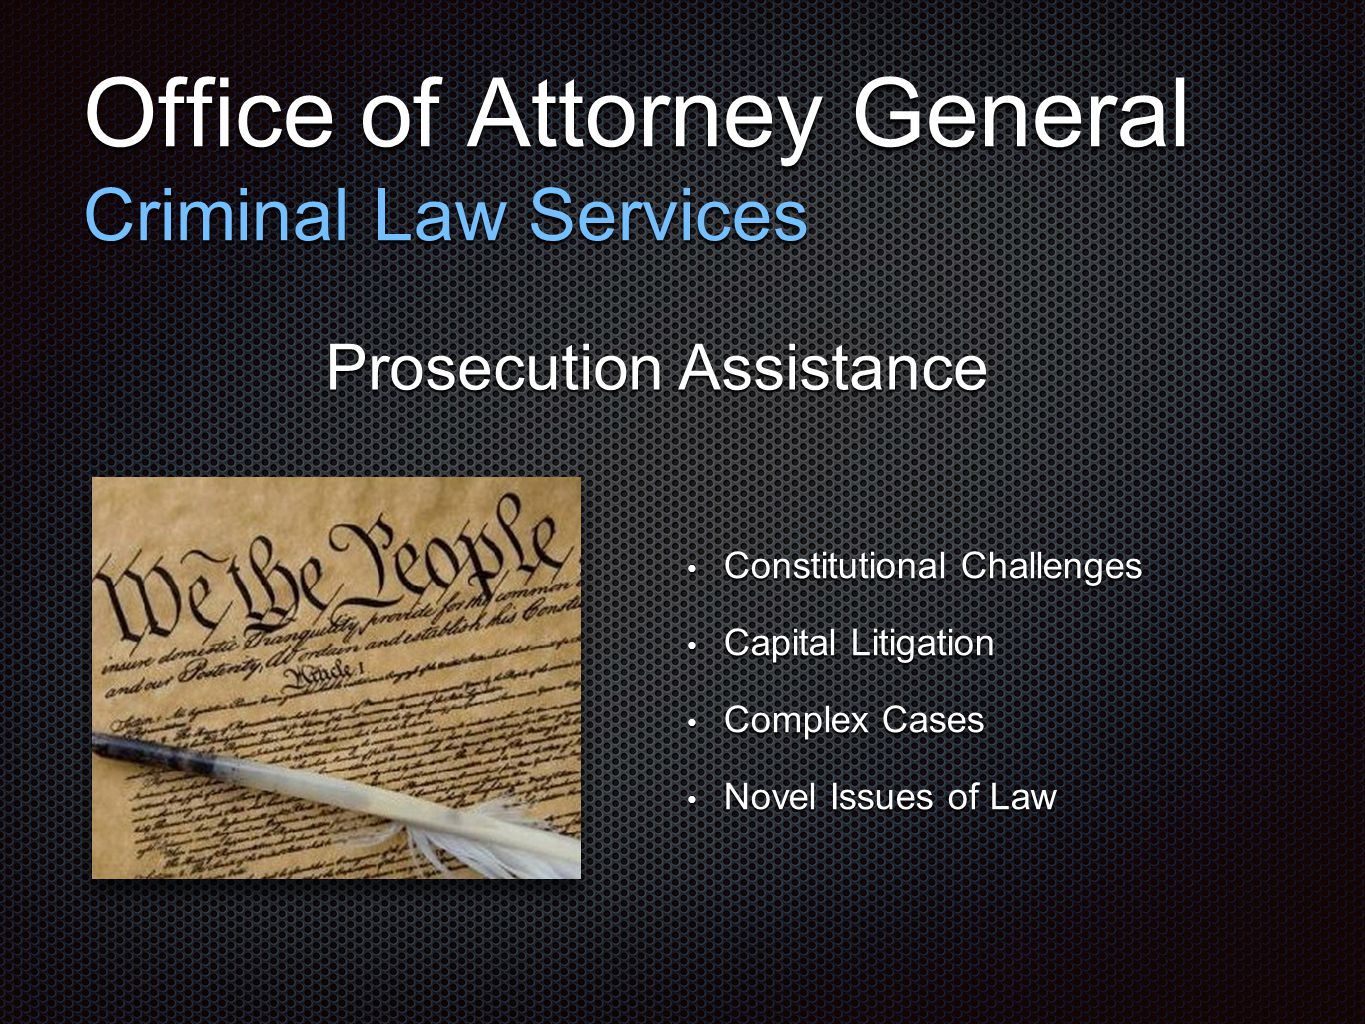 Office of Attorney General Criminal Law Services Prosecution Assistance Constitutional Challenges Constitutional Challenges Capital Litigation Capital Litigation Complex Cases Complex Cases Novel Issues of Law Novel Issues of Law